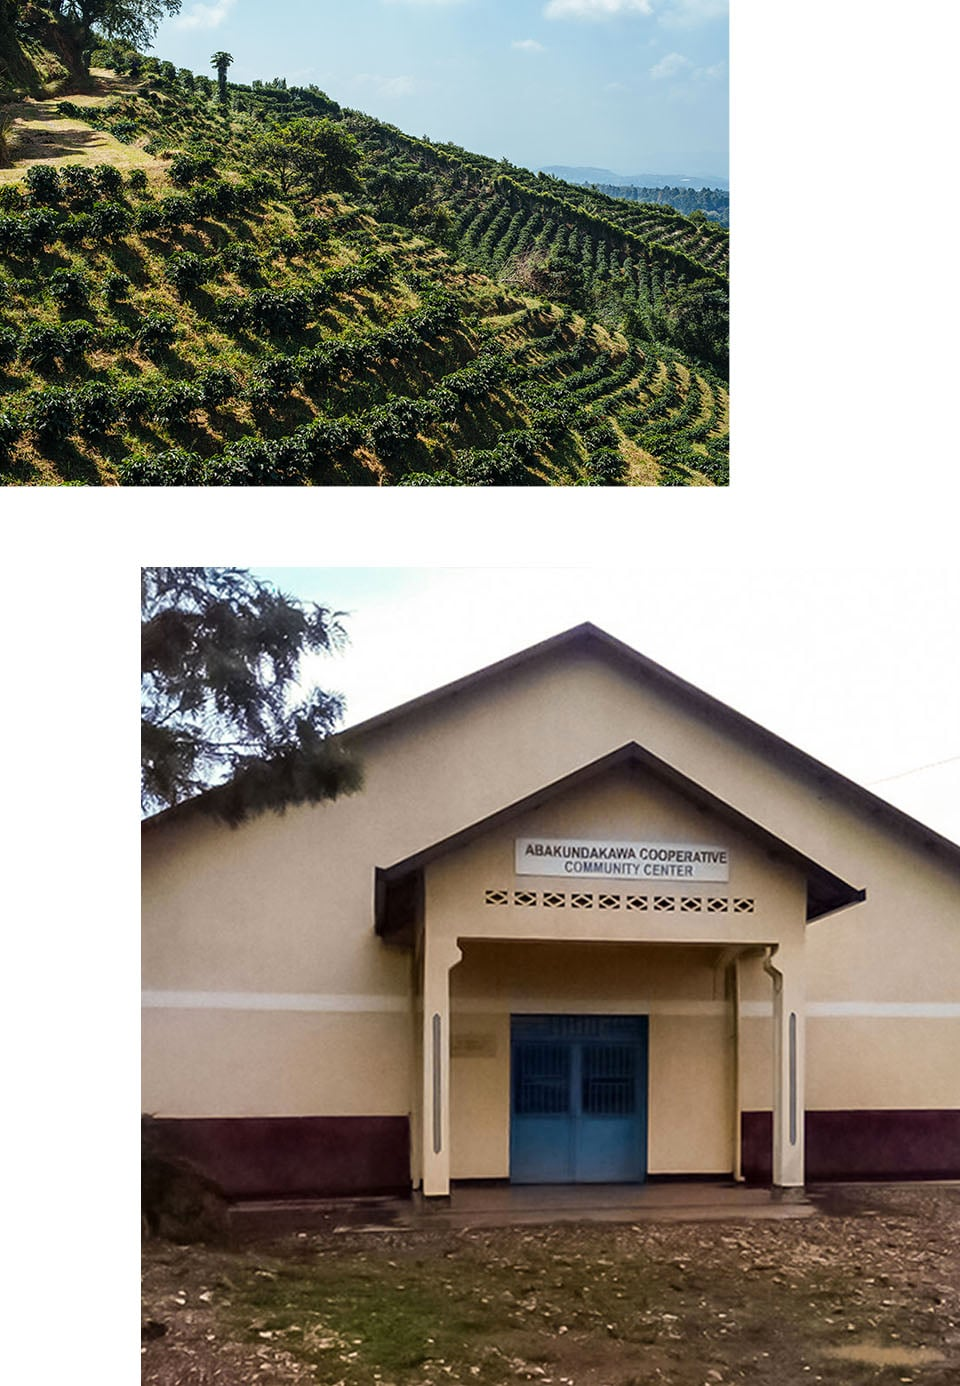 Collage of an agricultural hillside and the exterior of a community center building